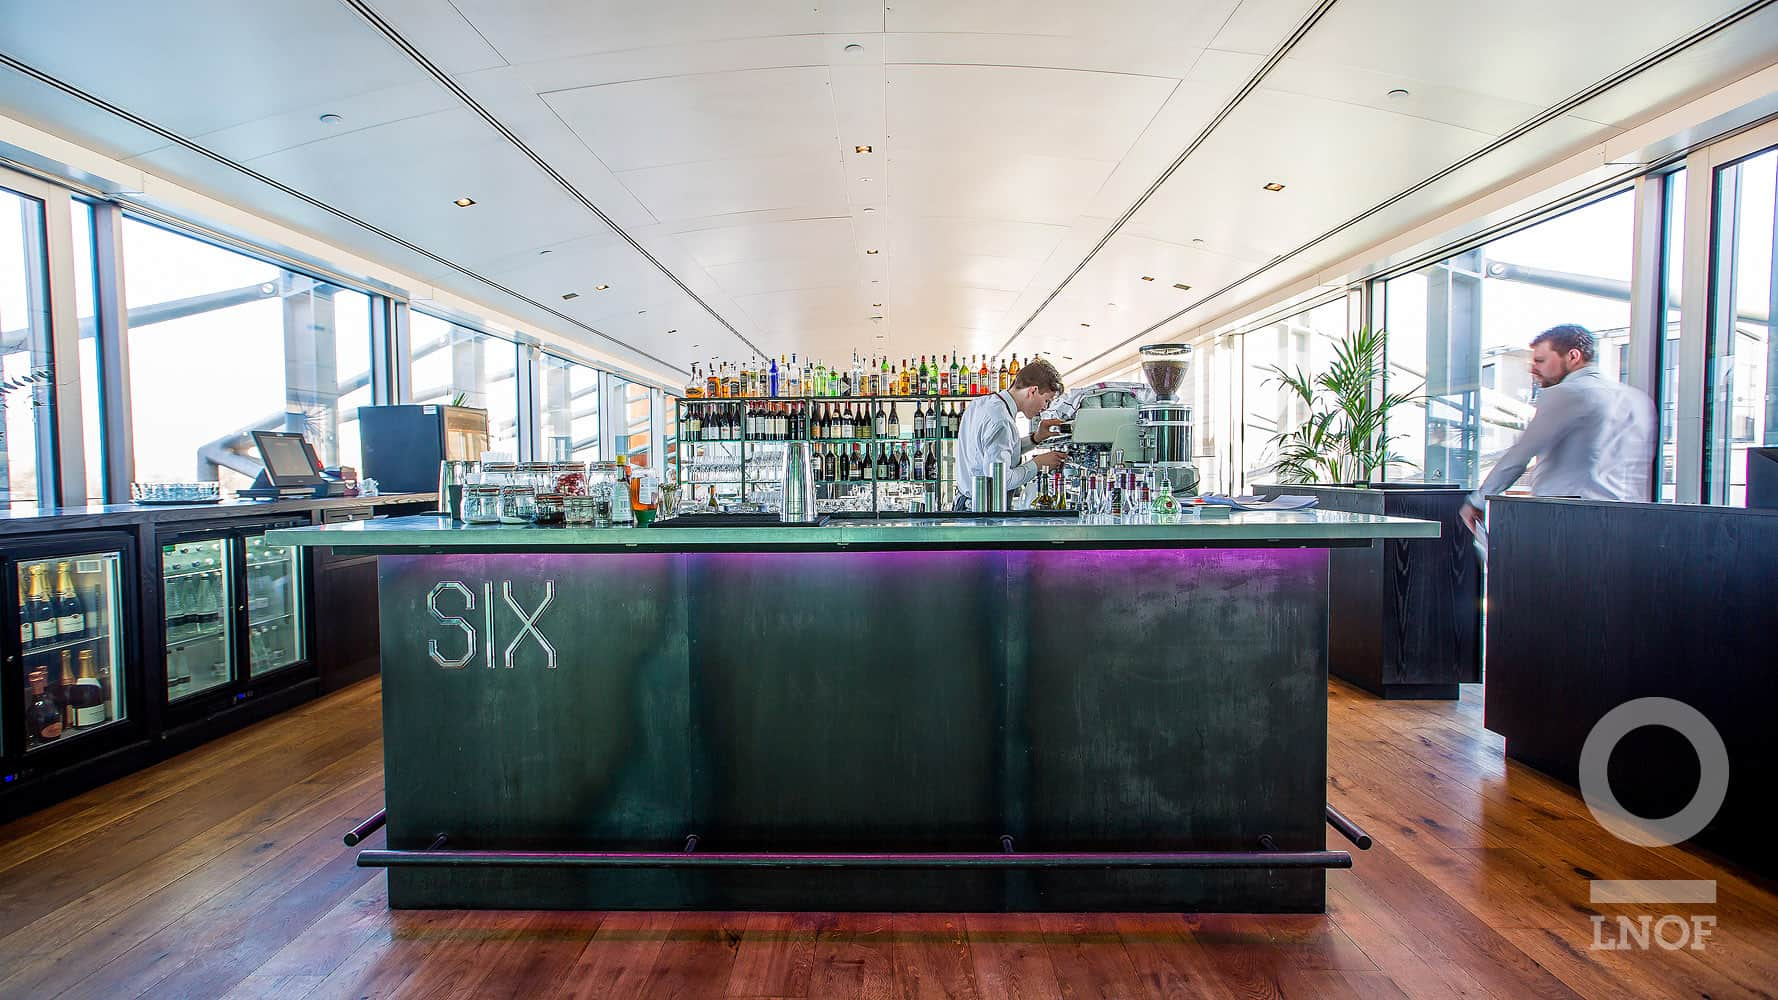 The bar at SIX restaurant